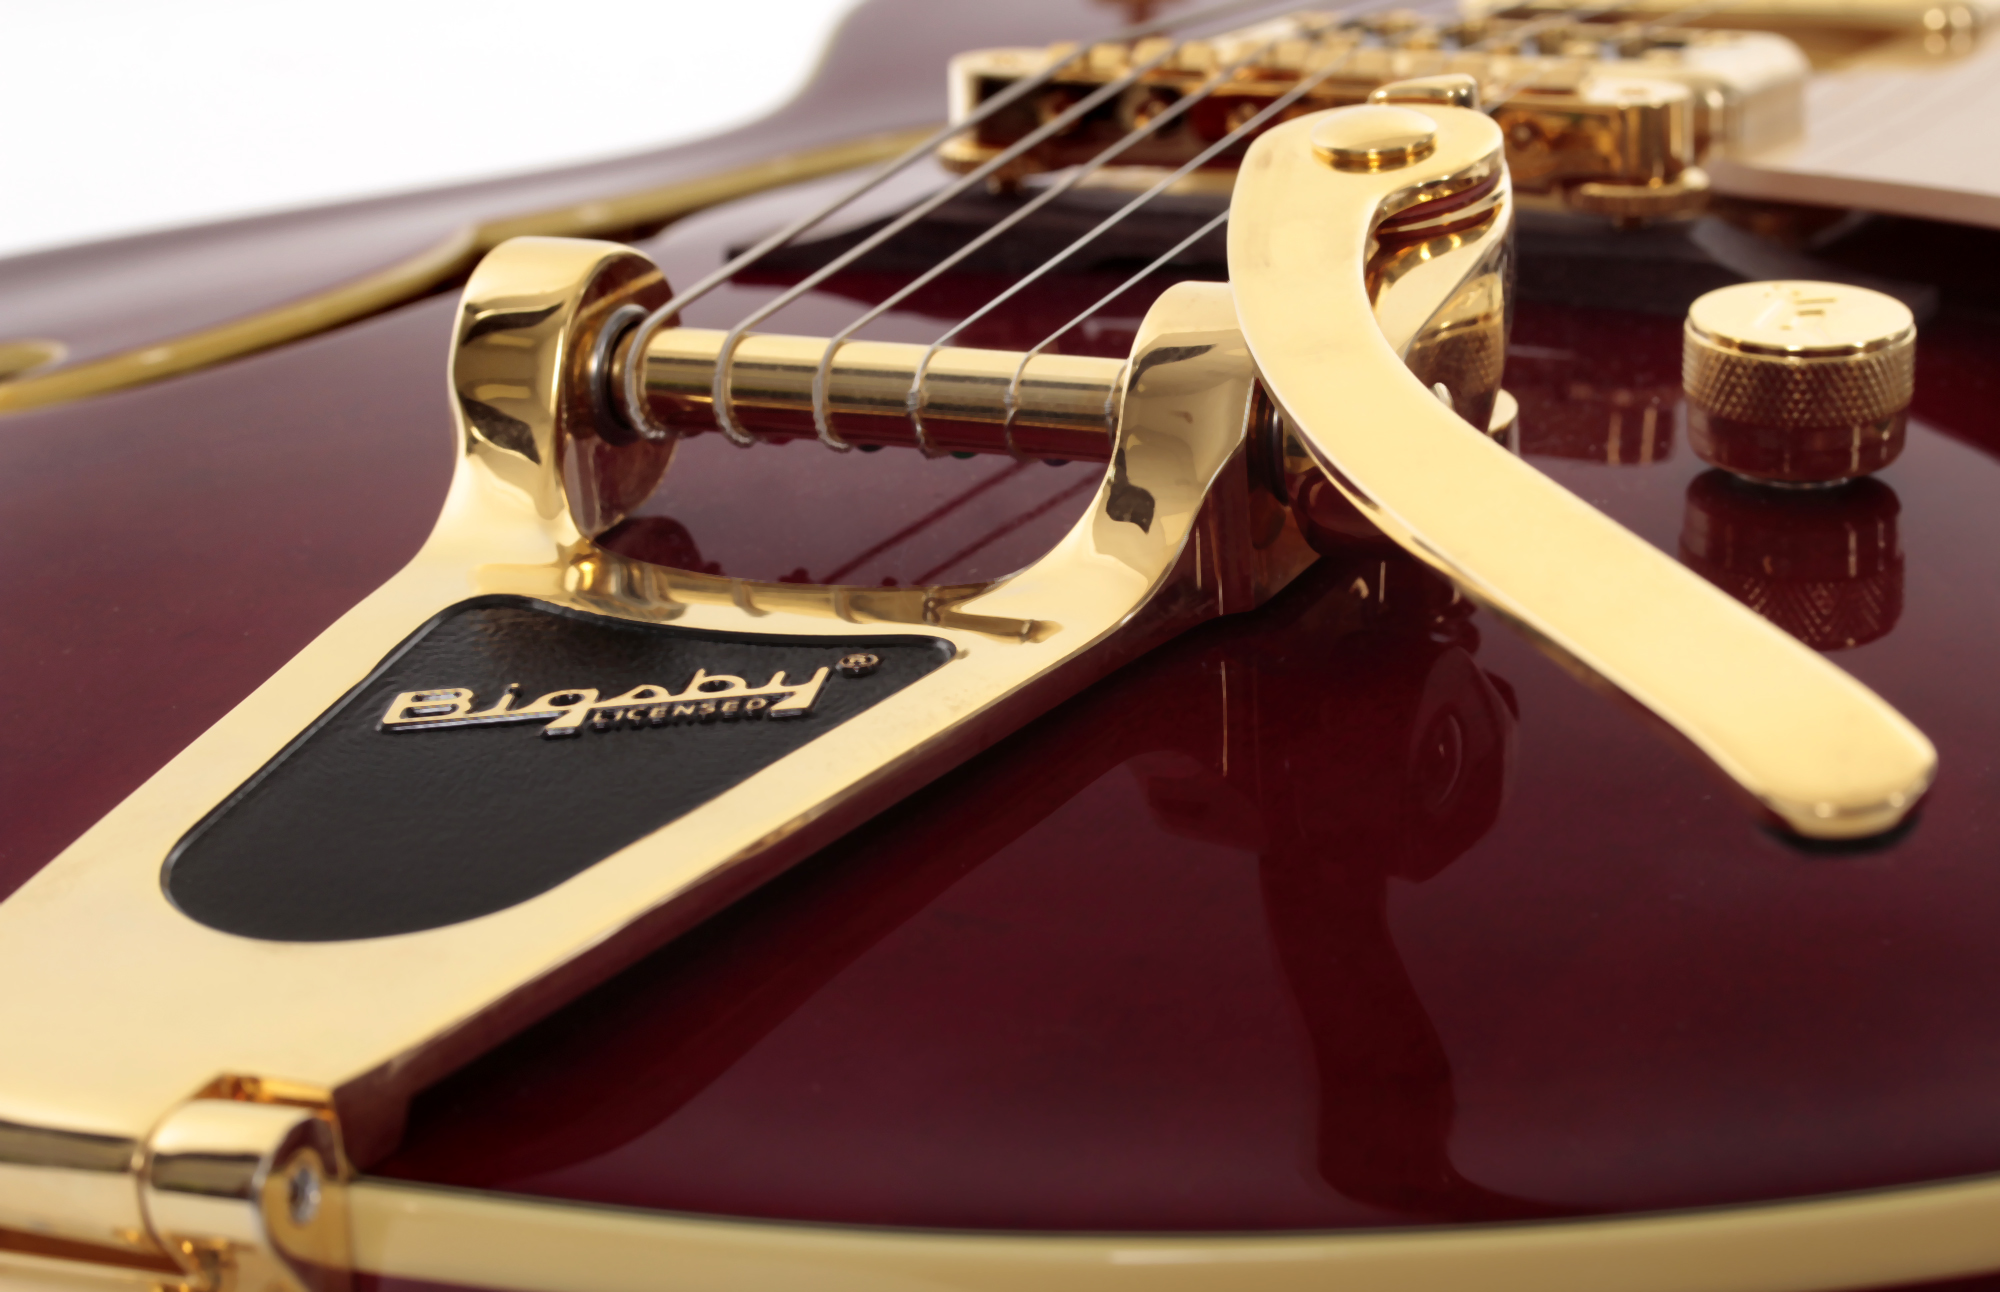 Bigsby tremolo bridge on a Gretsch guitar